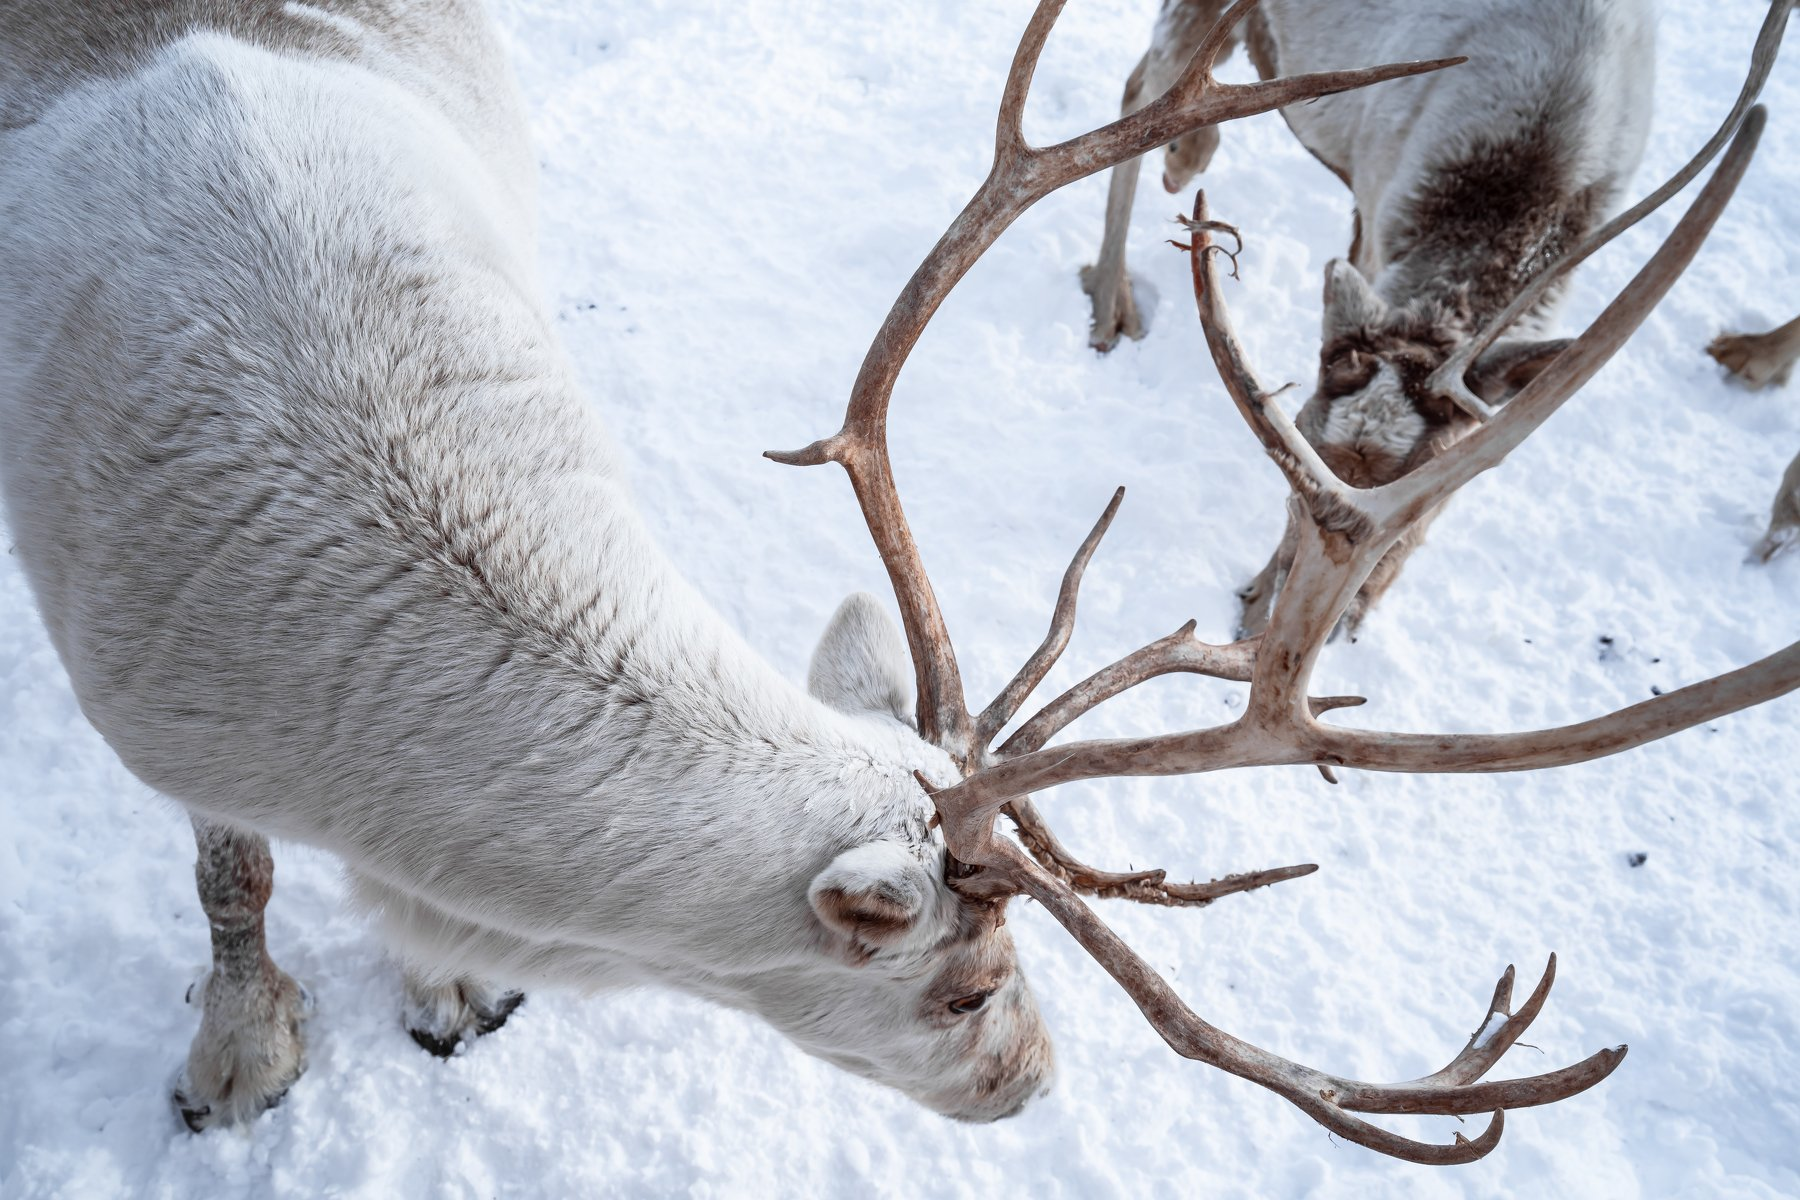 outdoor; group of animals; wilderness; wild animals; naked; grazing; wild; lapland; nordic; elk; natural; stag; travel; horn; male; scandinavia; single of animals; animals hunting; extreme terrain; wildlife; animal; snow; mammal; caribou; winter; north; r, Leonov Dmitry